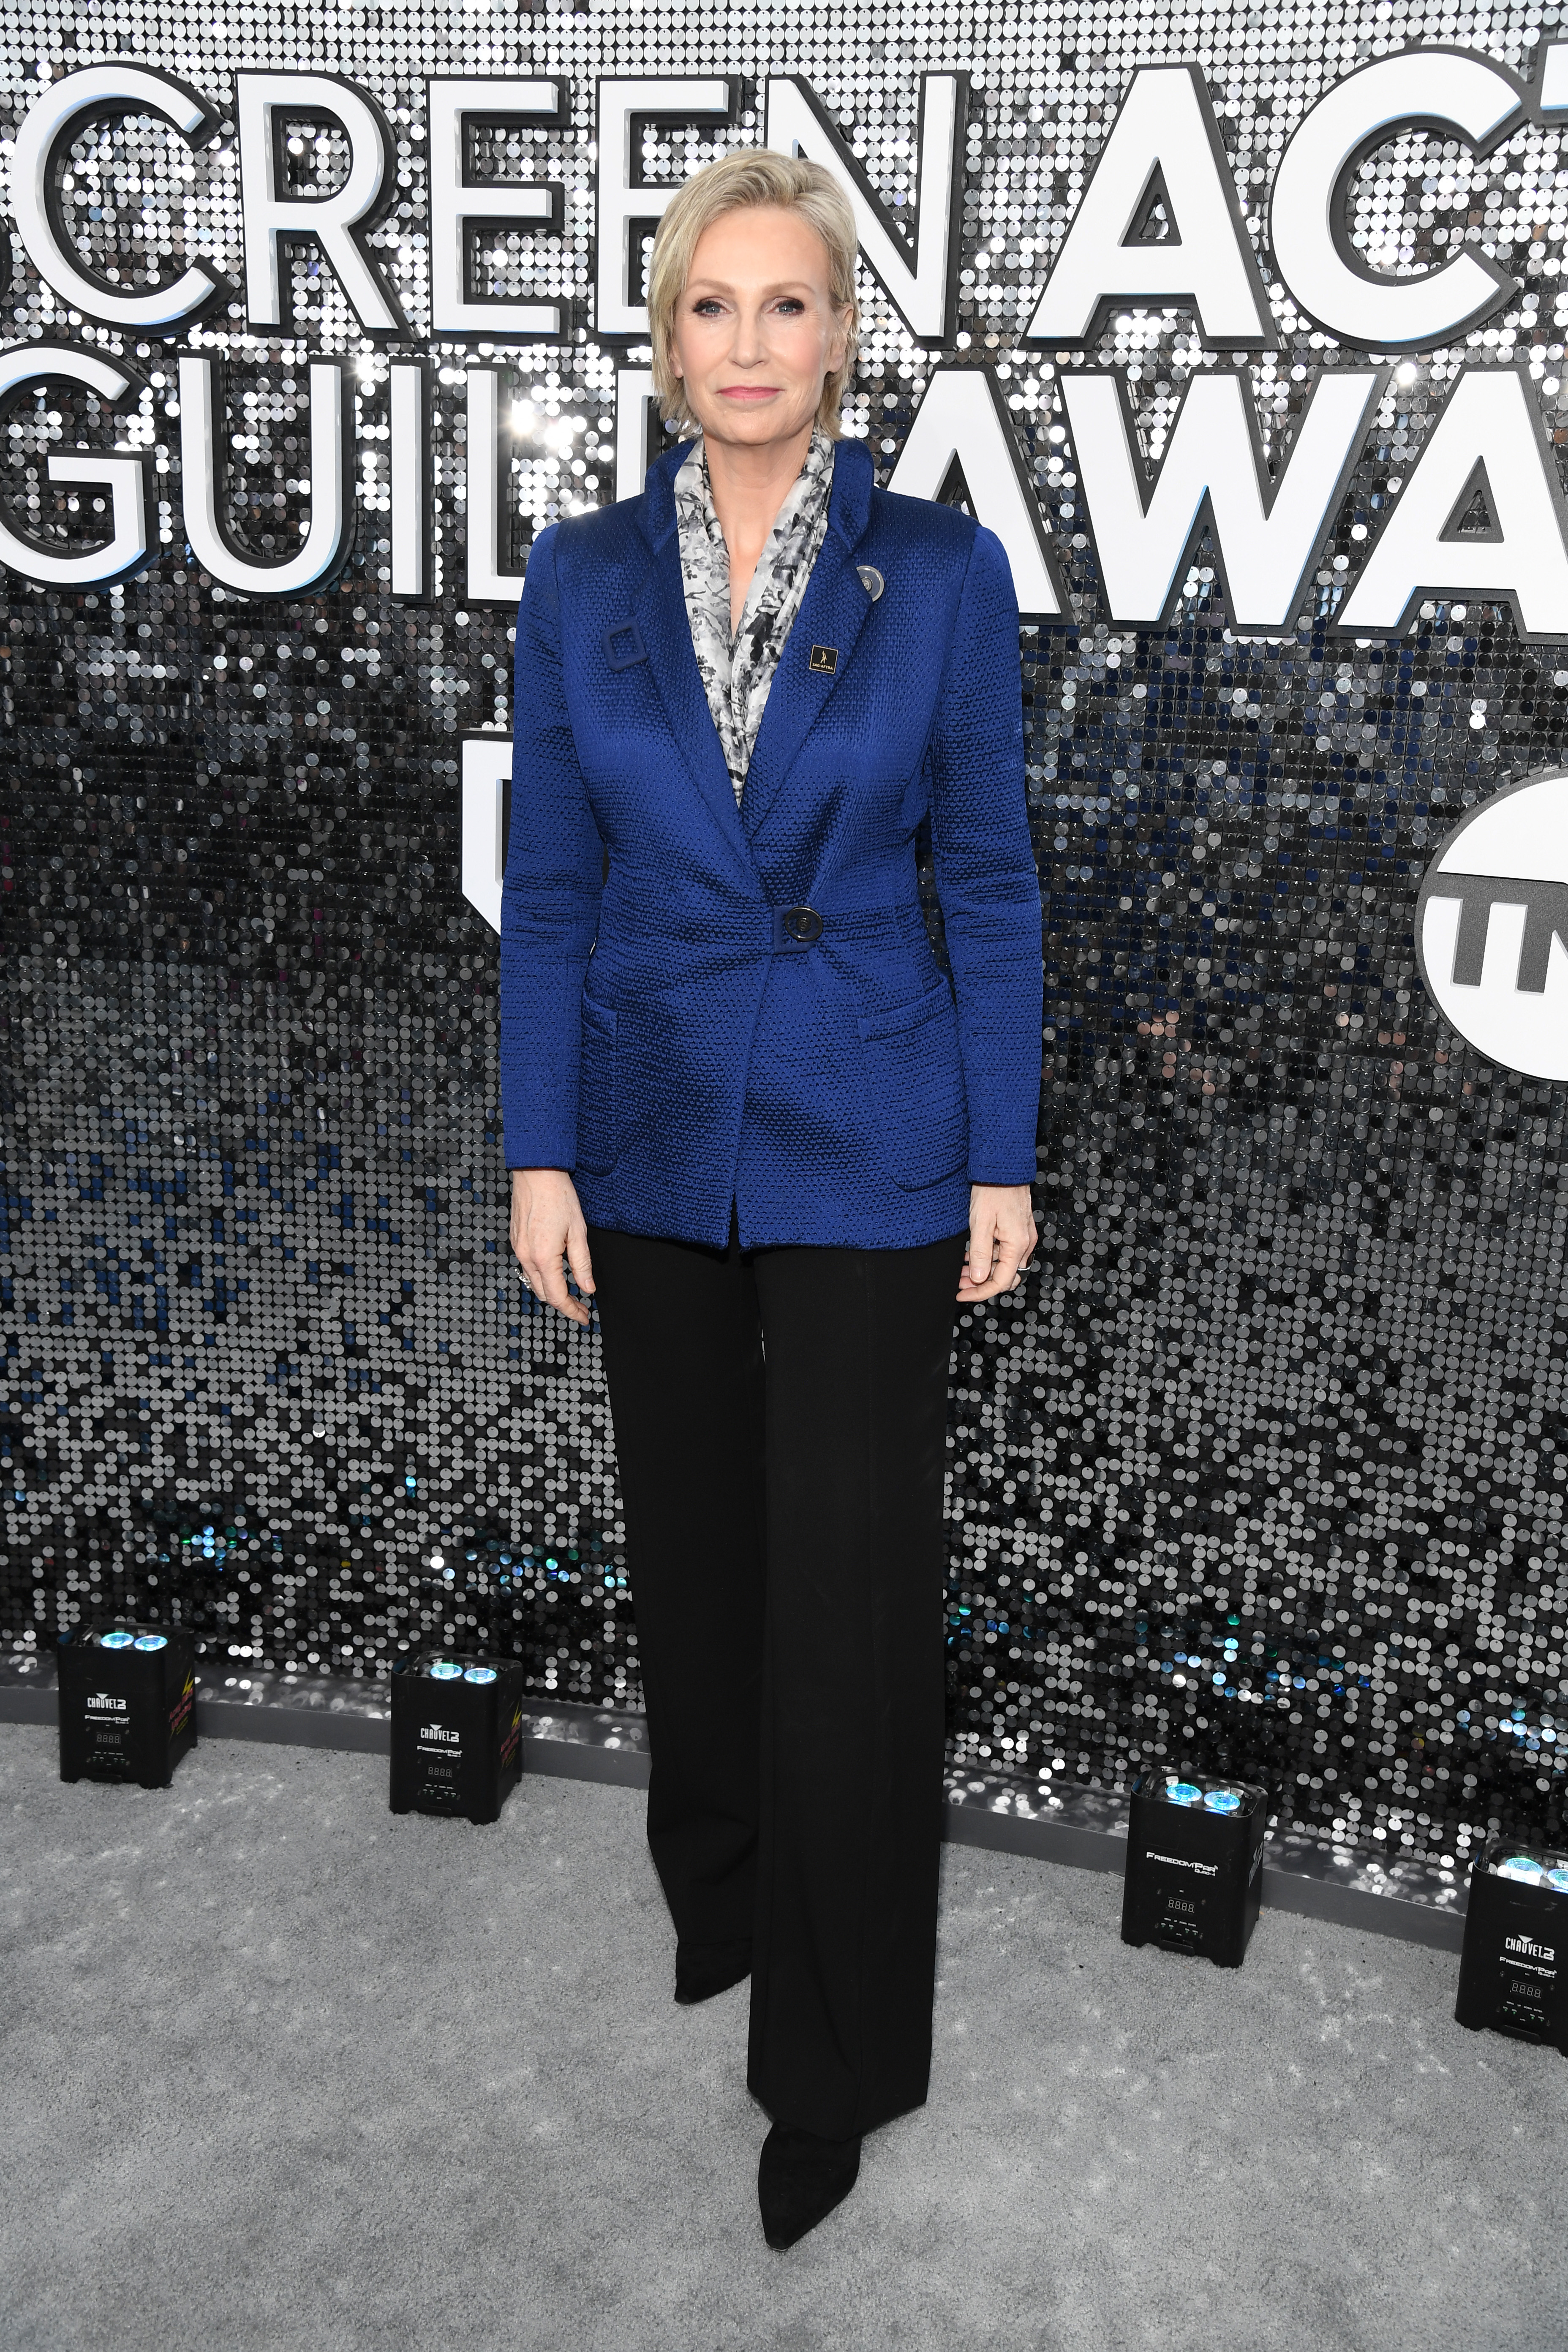 LOS ANGELES, CALIFORNIA - JANUARY 19: Jane Lynch attends the 26th Annual Screen ActorsGuild Awards at The Shrine Auditorium on January 19, 2020 in Los Angeles, California. 721336 (Photo by Kevin Mazur/Getty Images for Turner)